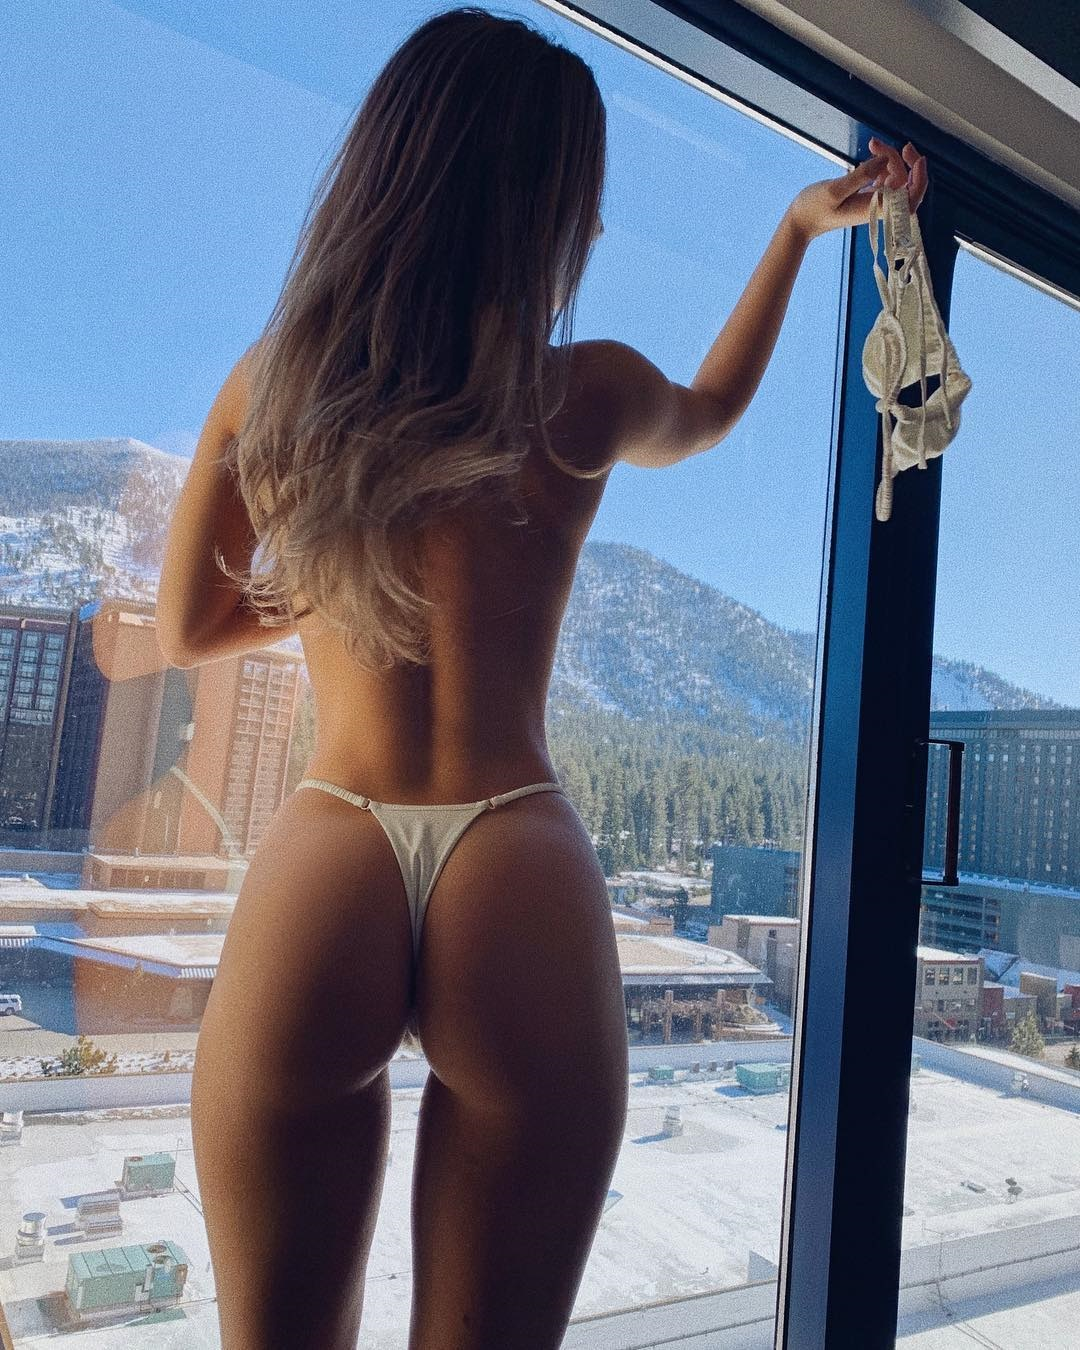 Daisy Keech, 19, wanted to prove to her Instagram followers that her bum was real after detractors claimed she'd had surgery